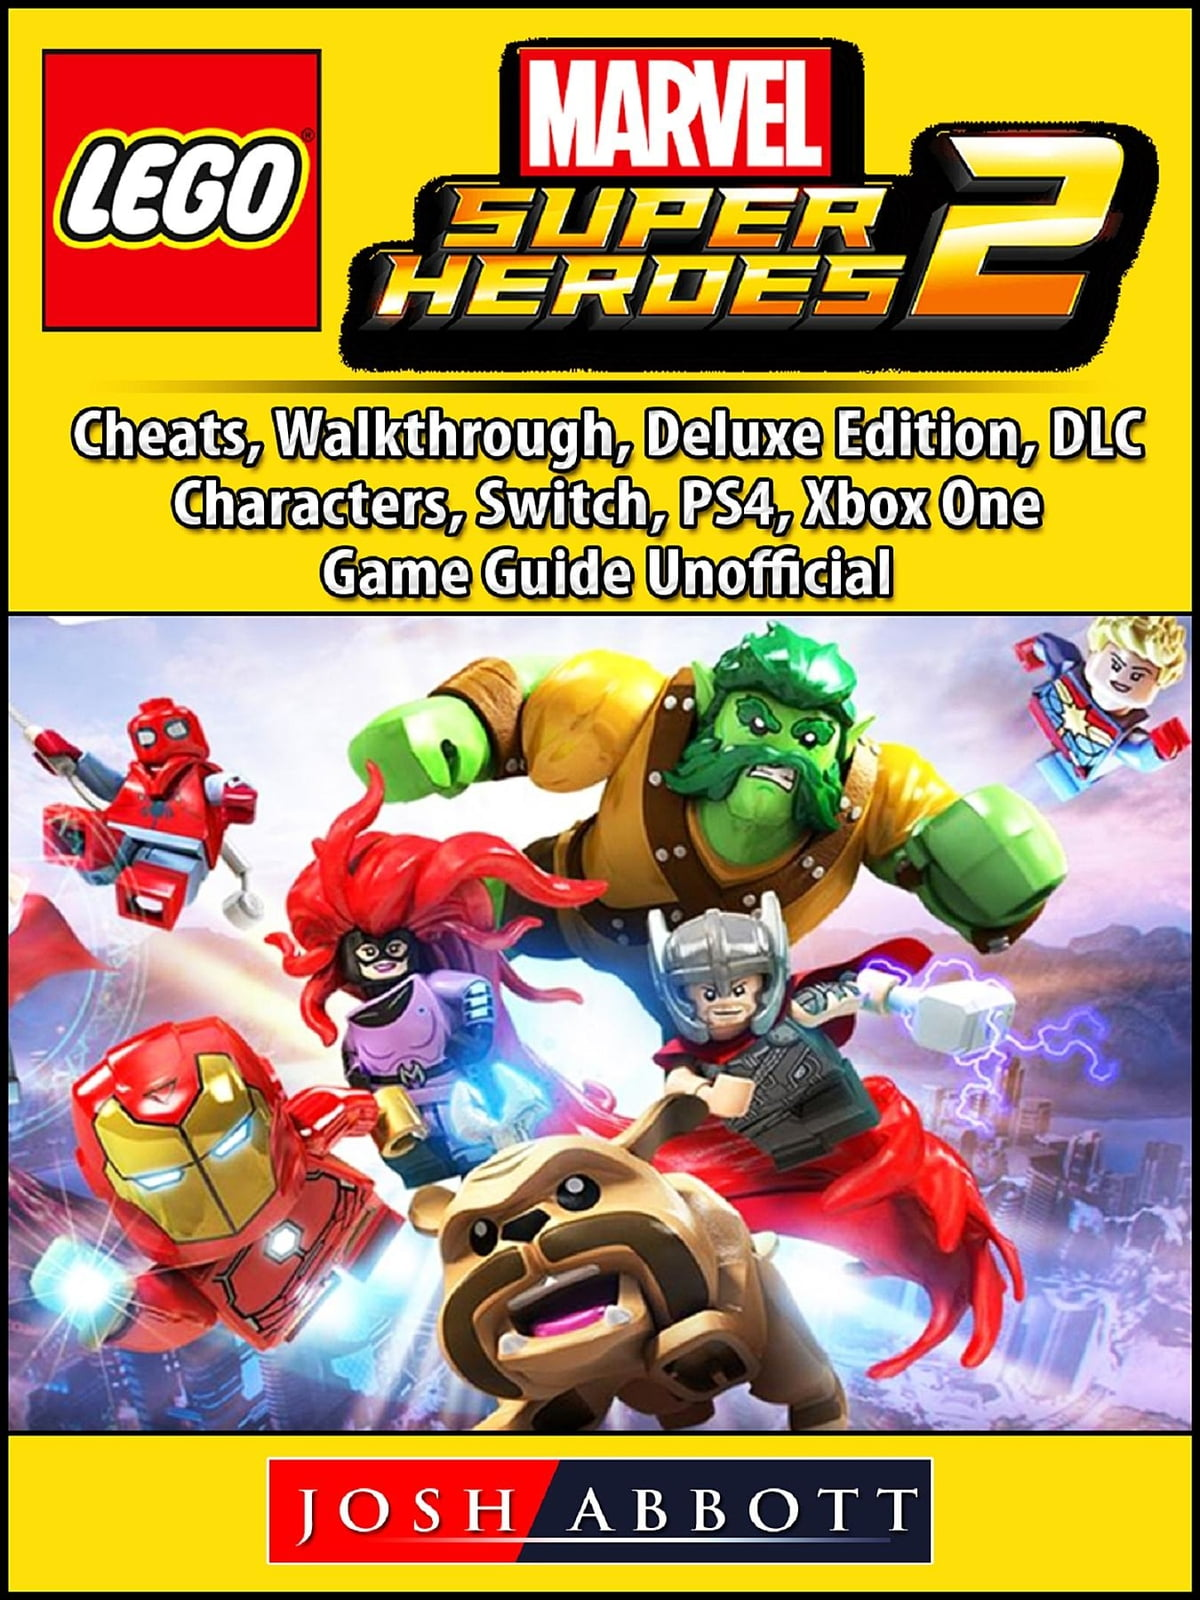 Lego Marvel Super Heroes 2, Cheats, Walkthrough, Deluxe Edition, DLC,  Characters, Switch, PS4, Xbox One, Game Guide Unofficial ebook by Josh  Abbott -